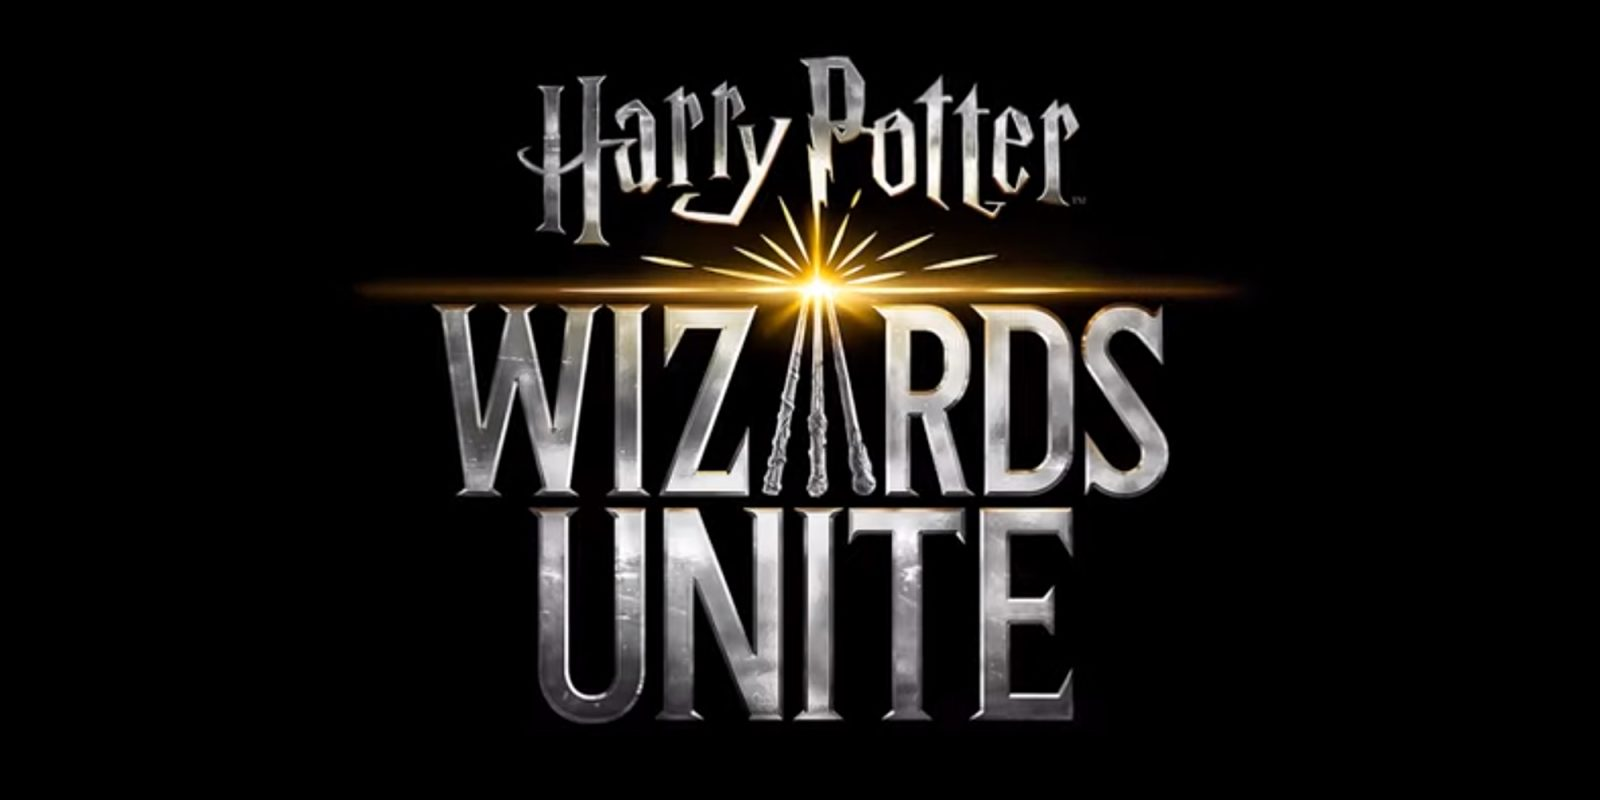 Harry Potter Wizards Unite South Africa